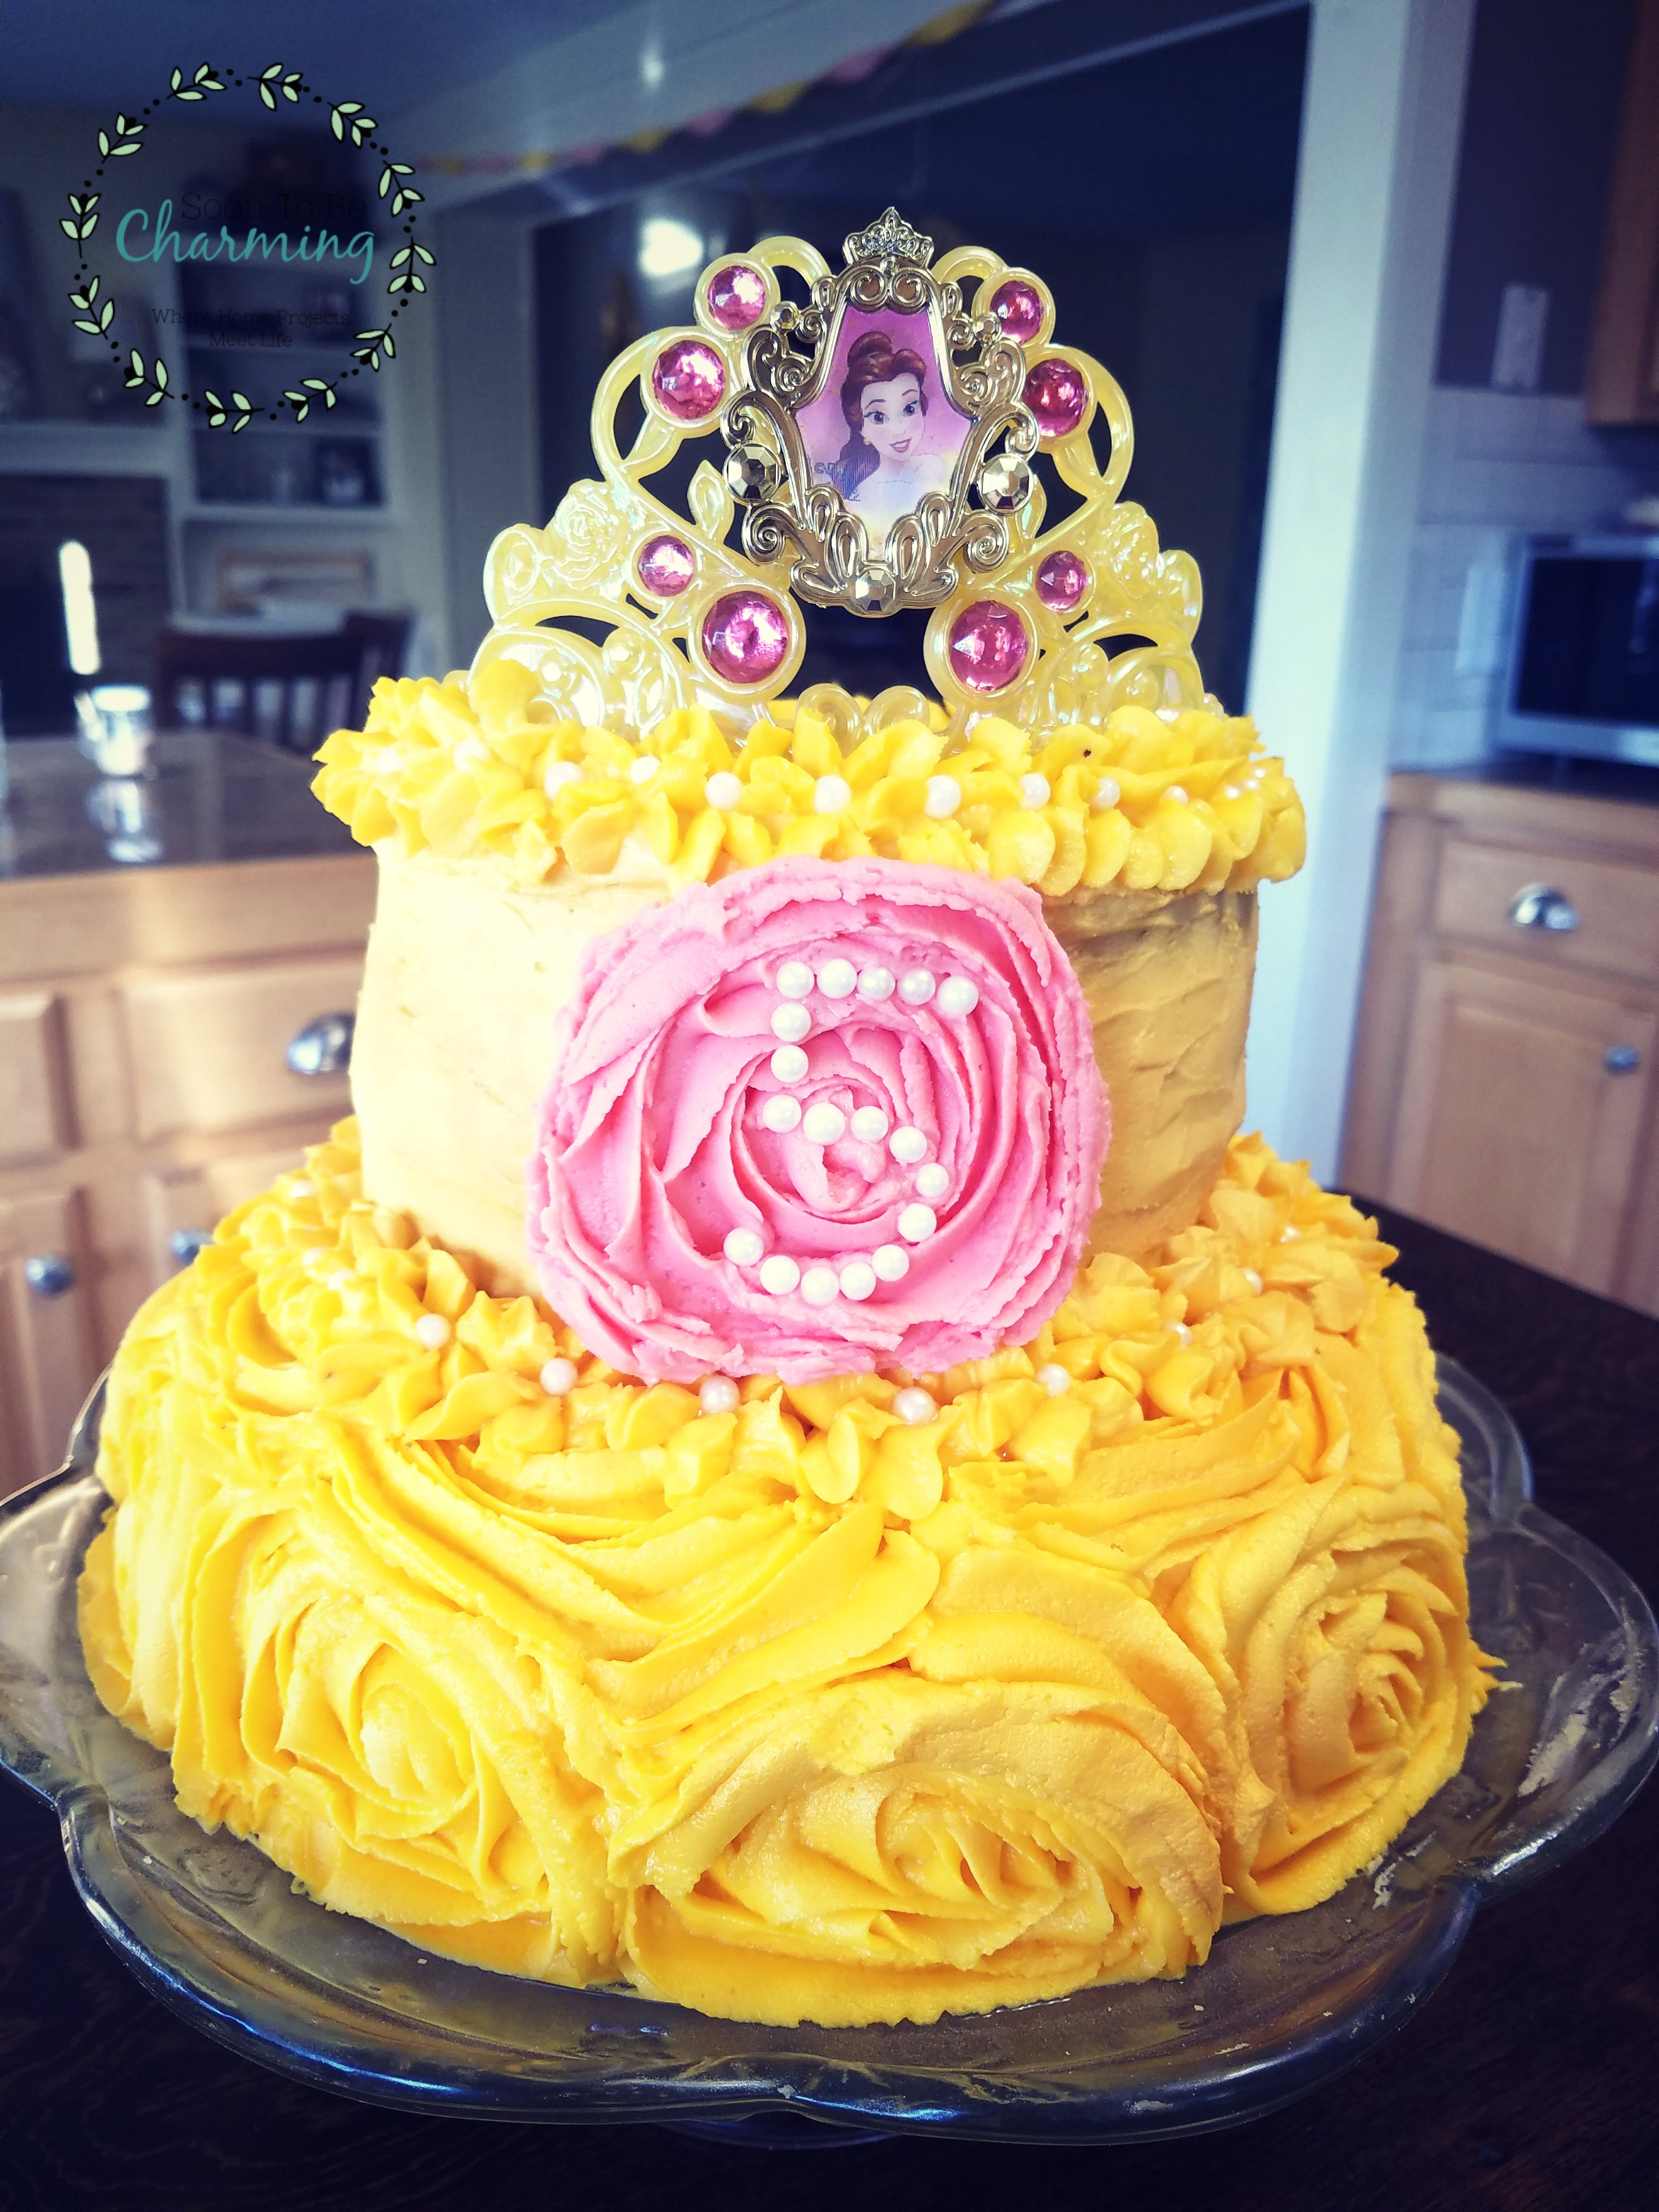 Cake Decorating For Beginners - Soon To Be Charming